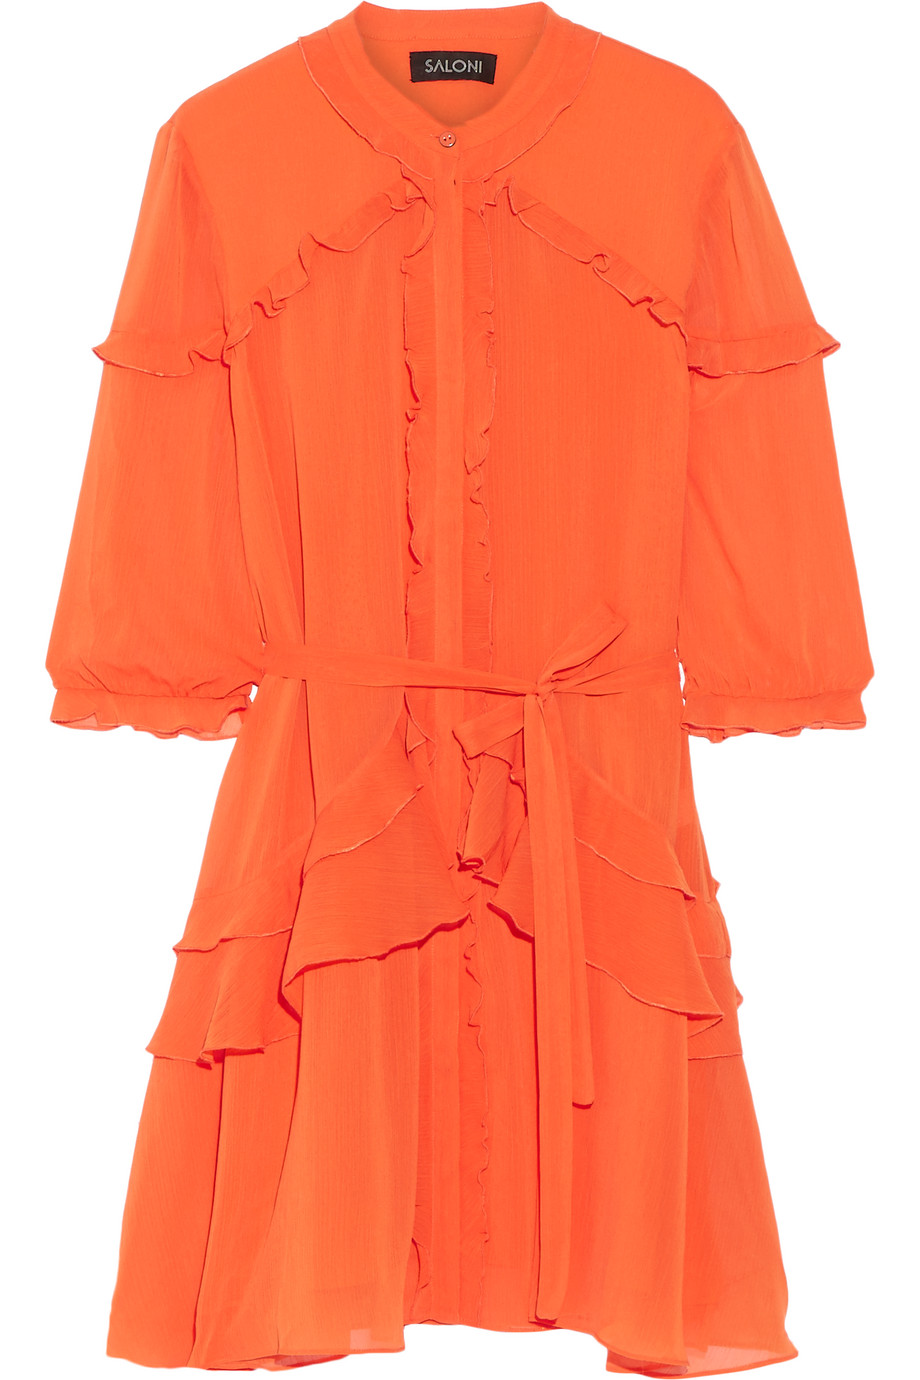 Saloni Tilly Ruffled Georgette Mini Dress, Bright Orange, Women's, Size: 6